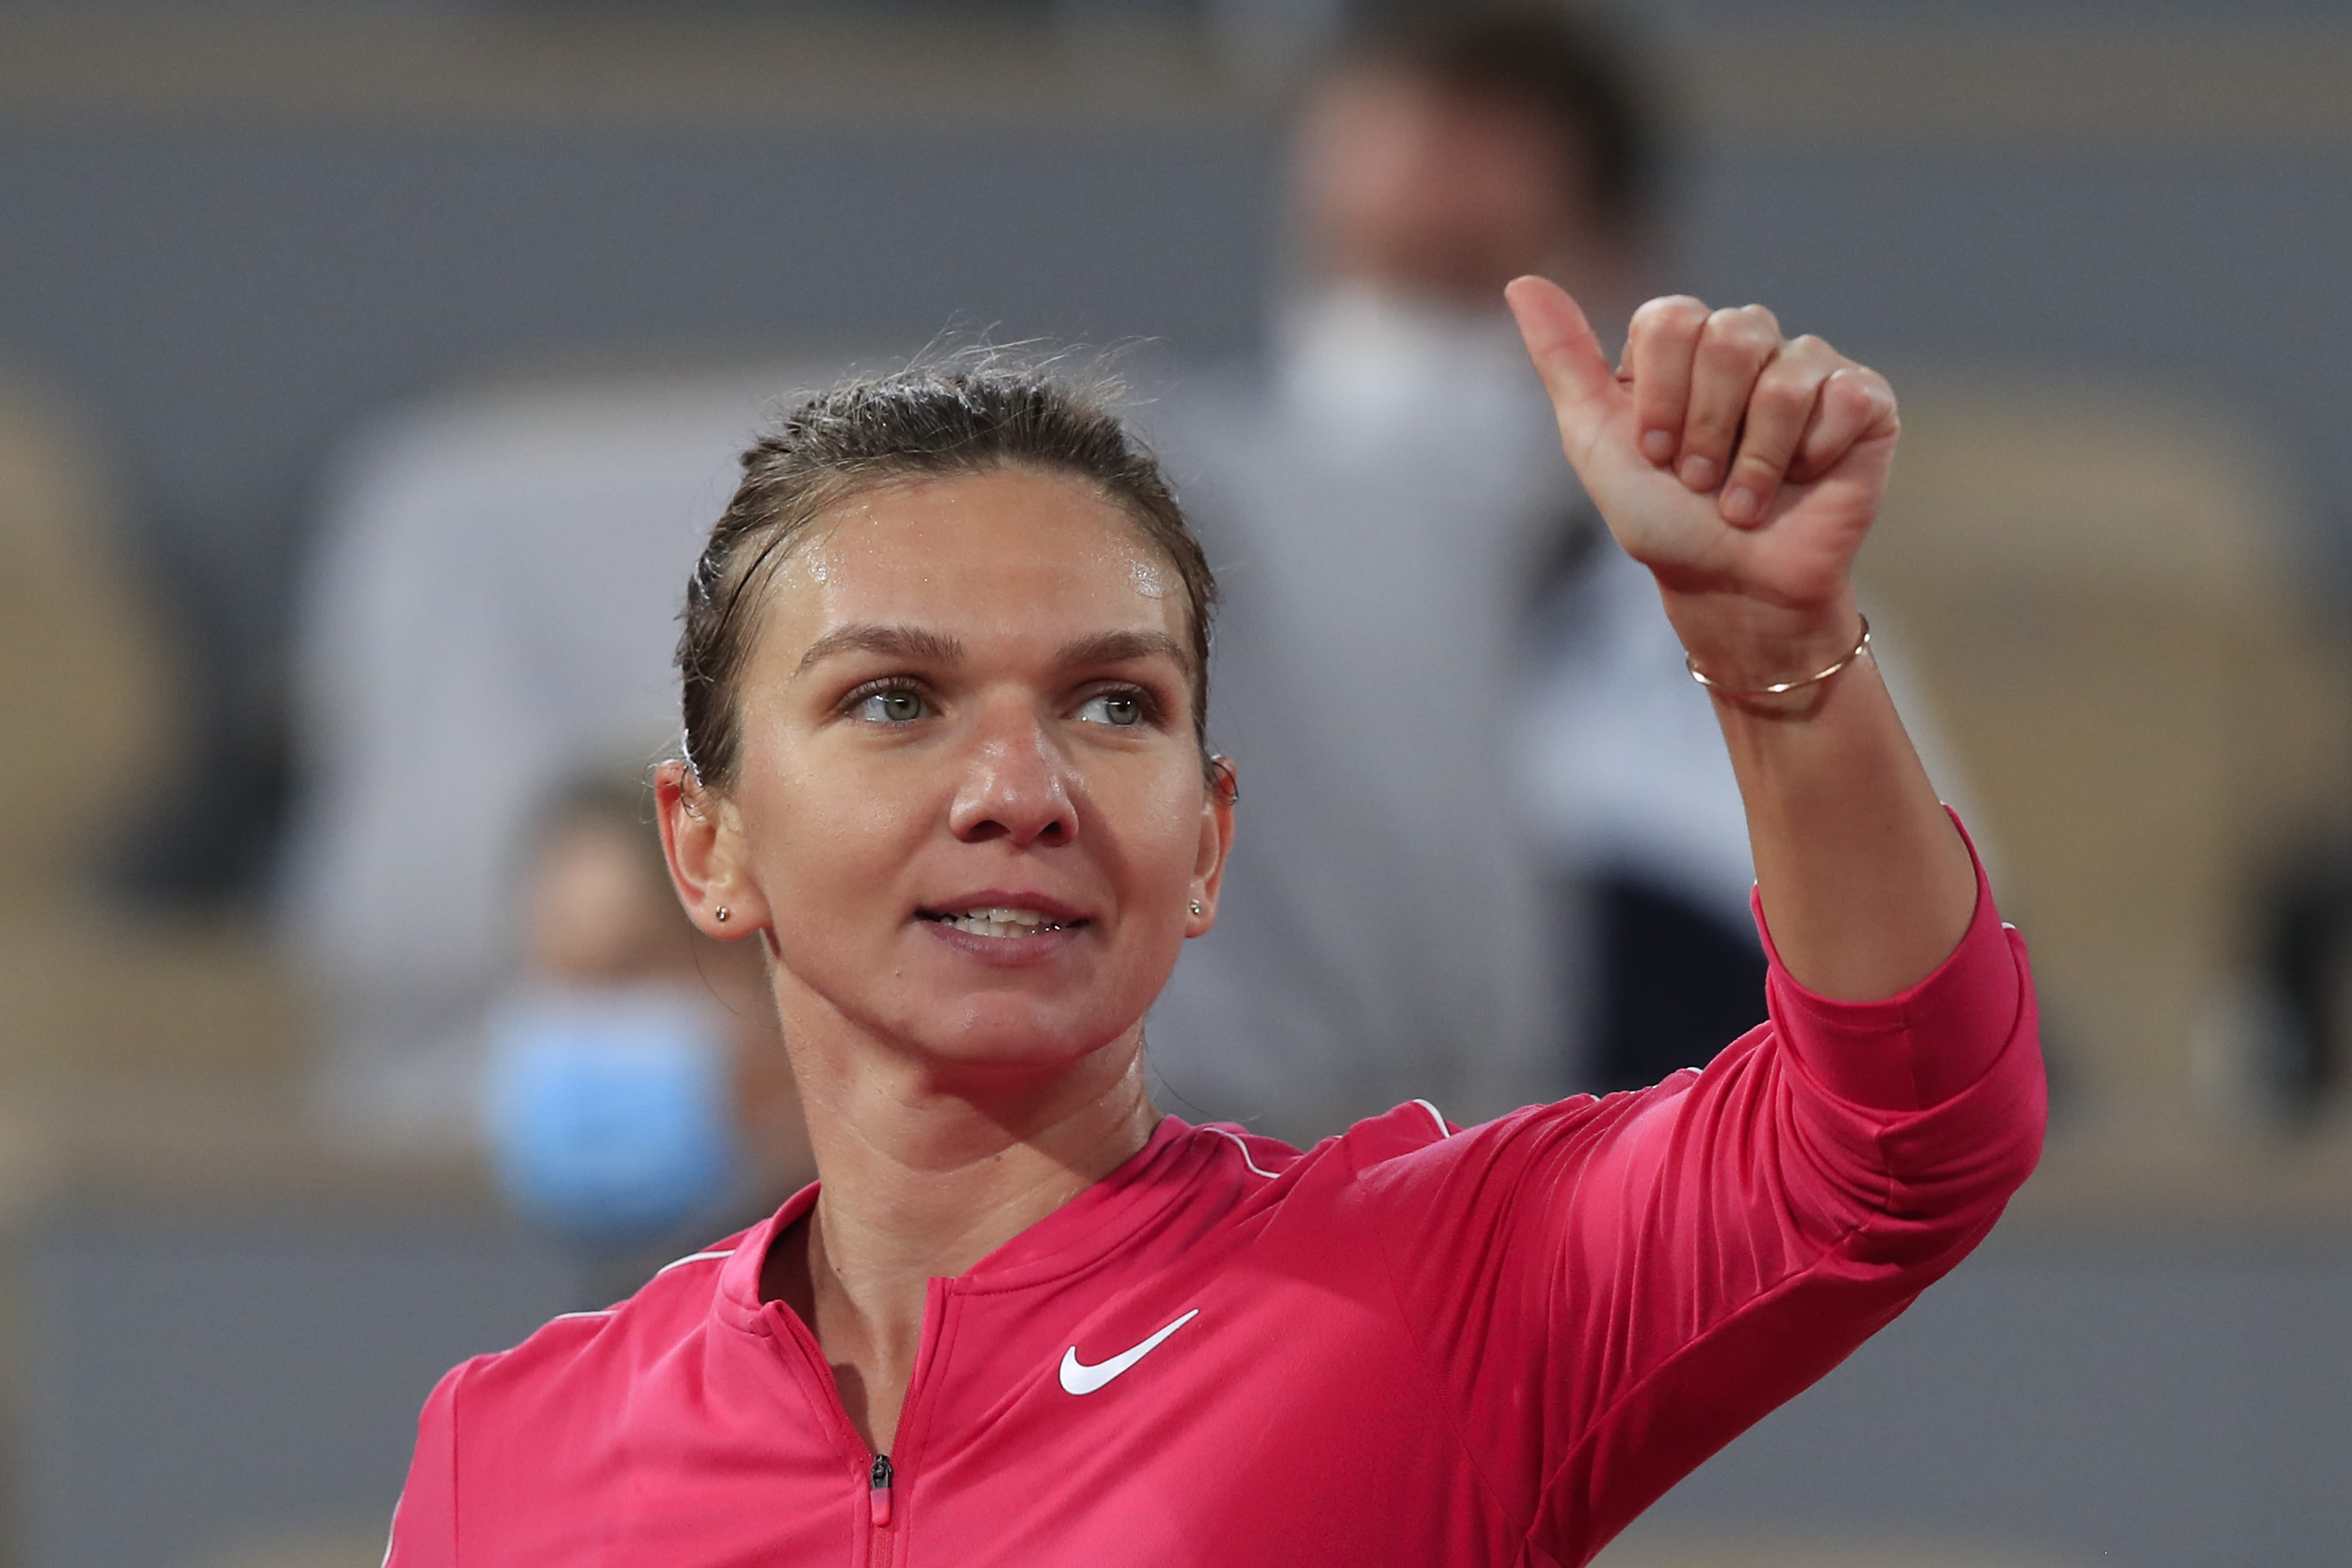 Romania's Simona Halep flashes a thumbs up after winning her third round match of the French Open tennis tournament against Amanda Anisimova of the U.S. in two sets, 6-0, 6-1, at the Roland Garros stadium in Paris, France, Friday, Oct. 2, 2020. (AP Photo/Michel Euler)